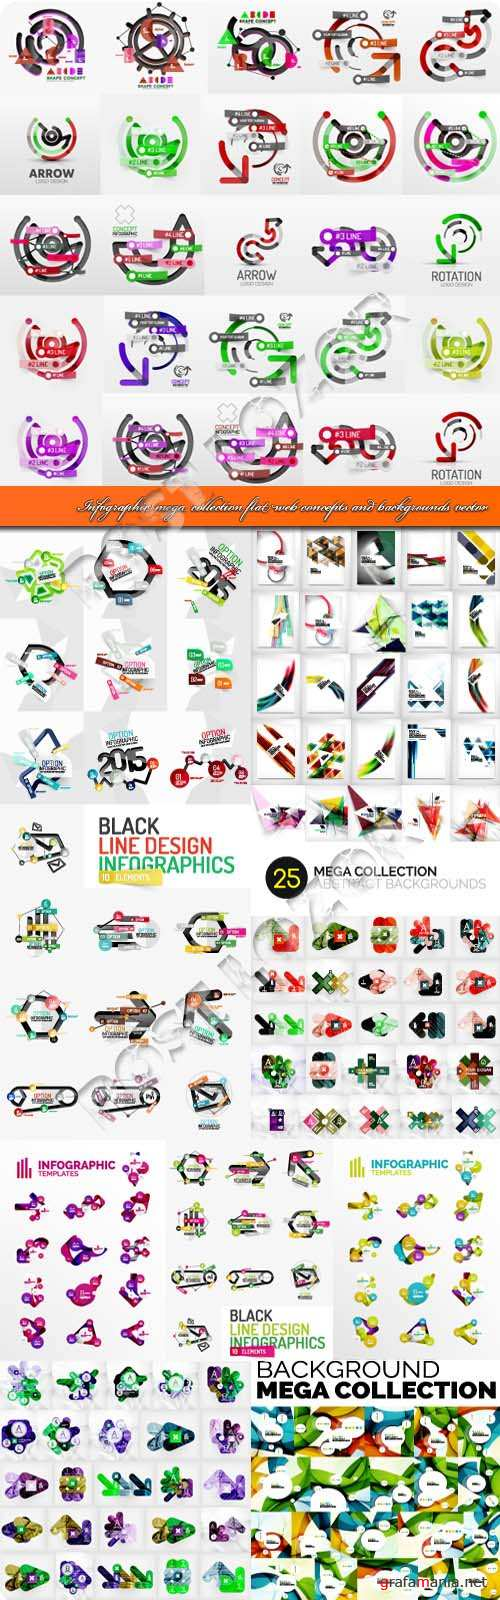 Infographic mega collection flat web concepts and backgrounds vector